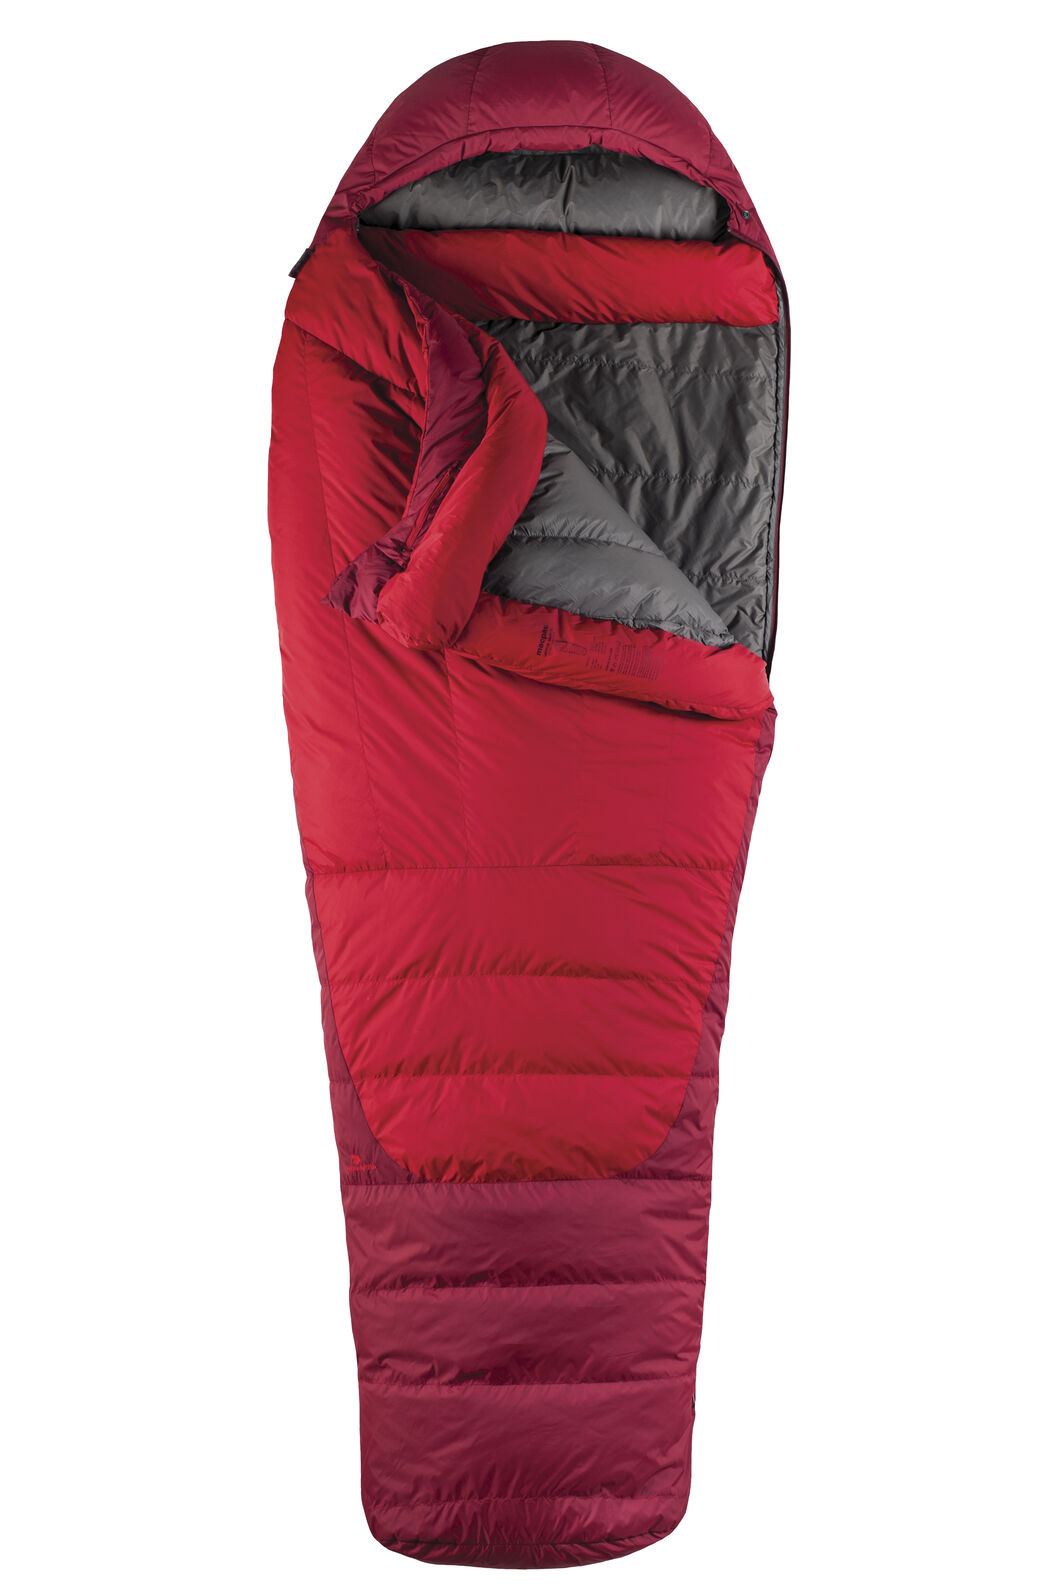 Macpac Latitude XP Goose Down 500 Sleeping Bag - Standard, Chilli, hi-res